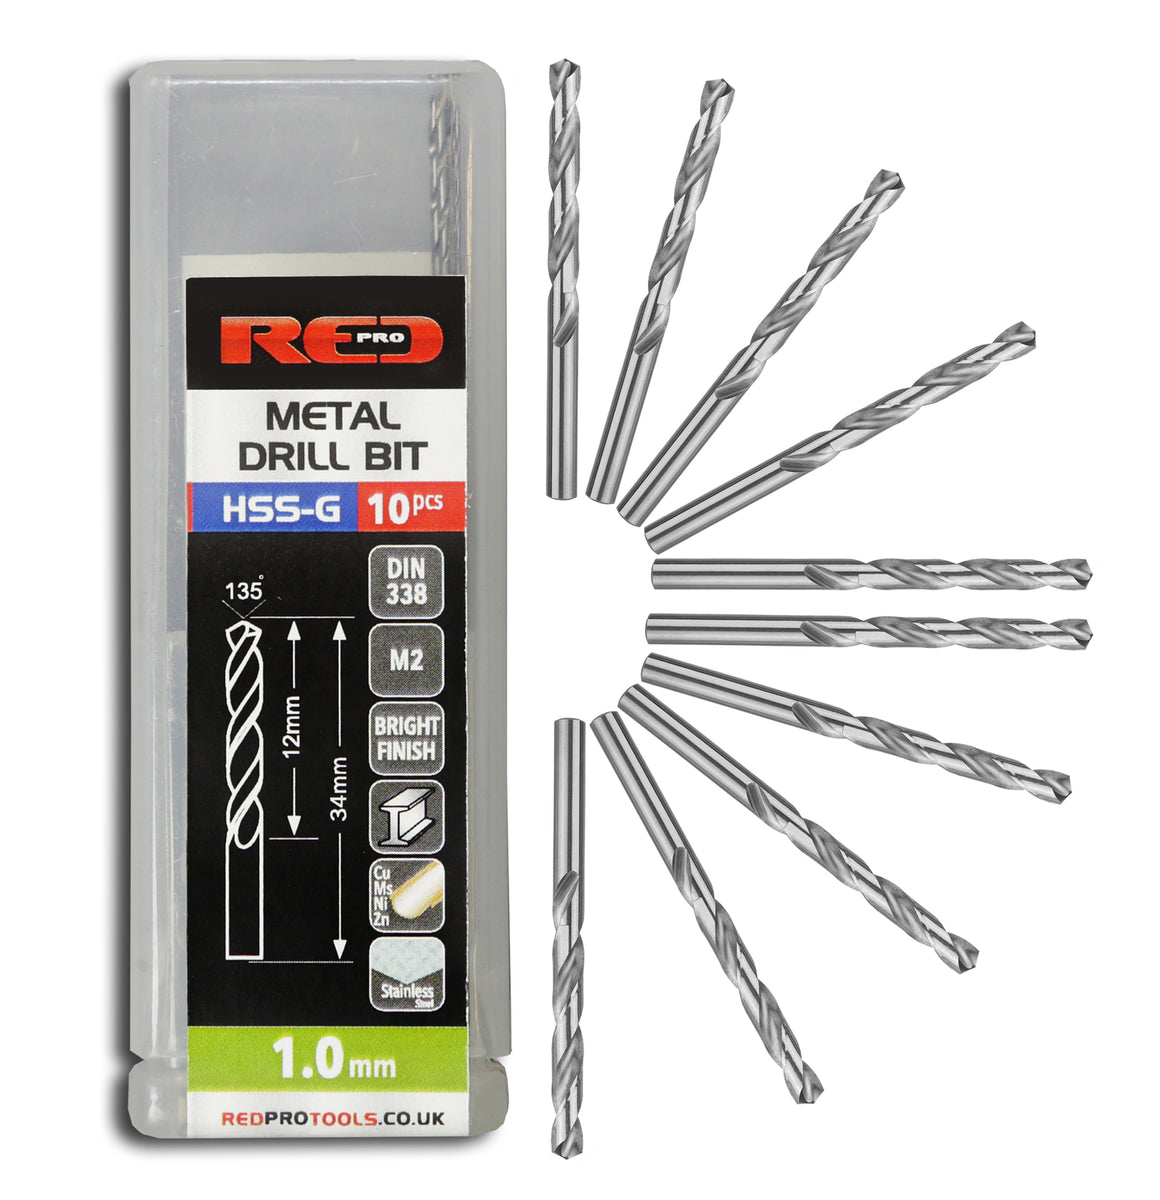 Red Pro Tools Metal Drill Bit HSS-G 1.0mm - 10 Pieces